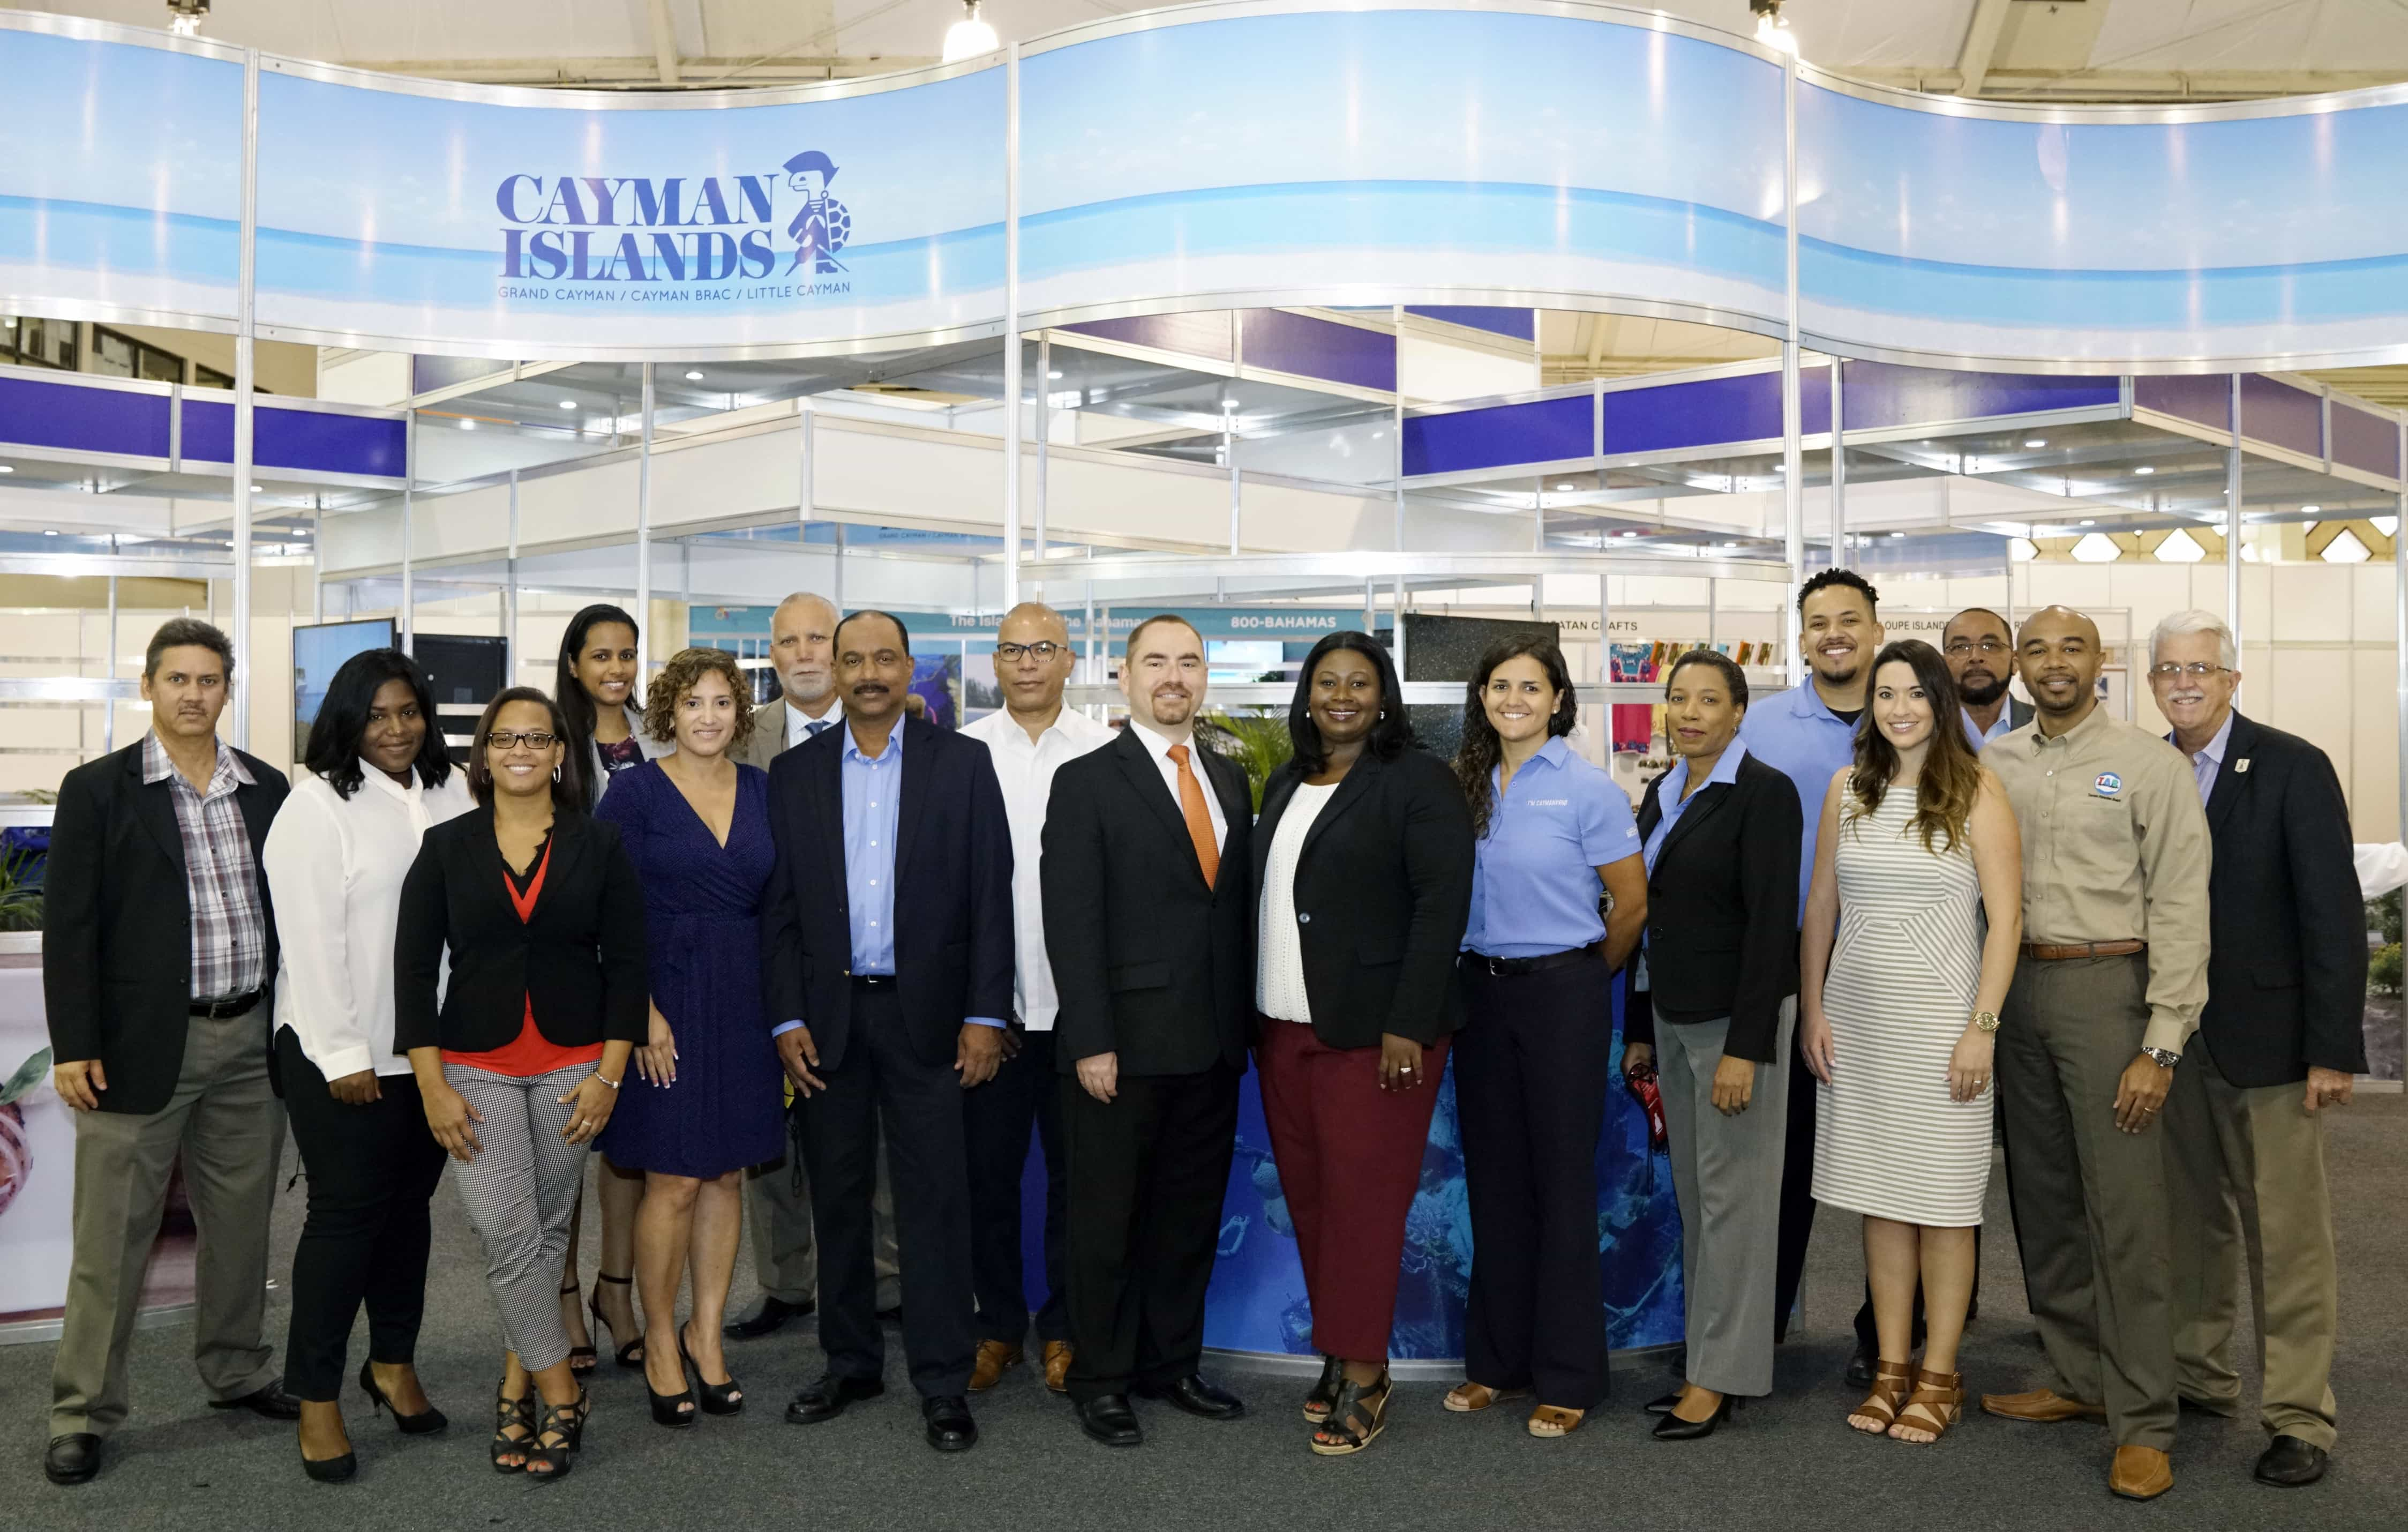 (From Left to Right) The Cayman Islands delegates are Joseph Woods, India Narcisse, Melissa Ebanks, Robyn Hera, Doris Jackson, Kenneth Hydes, Raymond Hydes, Port Authority Director Clement Reid, Ministry of Tourism Chief Officer Stran Bodden, Director of Tourism Rosa Harris, Jessica Pawlik, Gail Henry, Eldon Chisholm, Sheyma Romanica, Burns Rankin, Patrick Thompson and Timothy Adam. Not pictured Chris Sorensen and Tracy Seymour